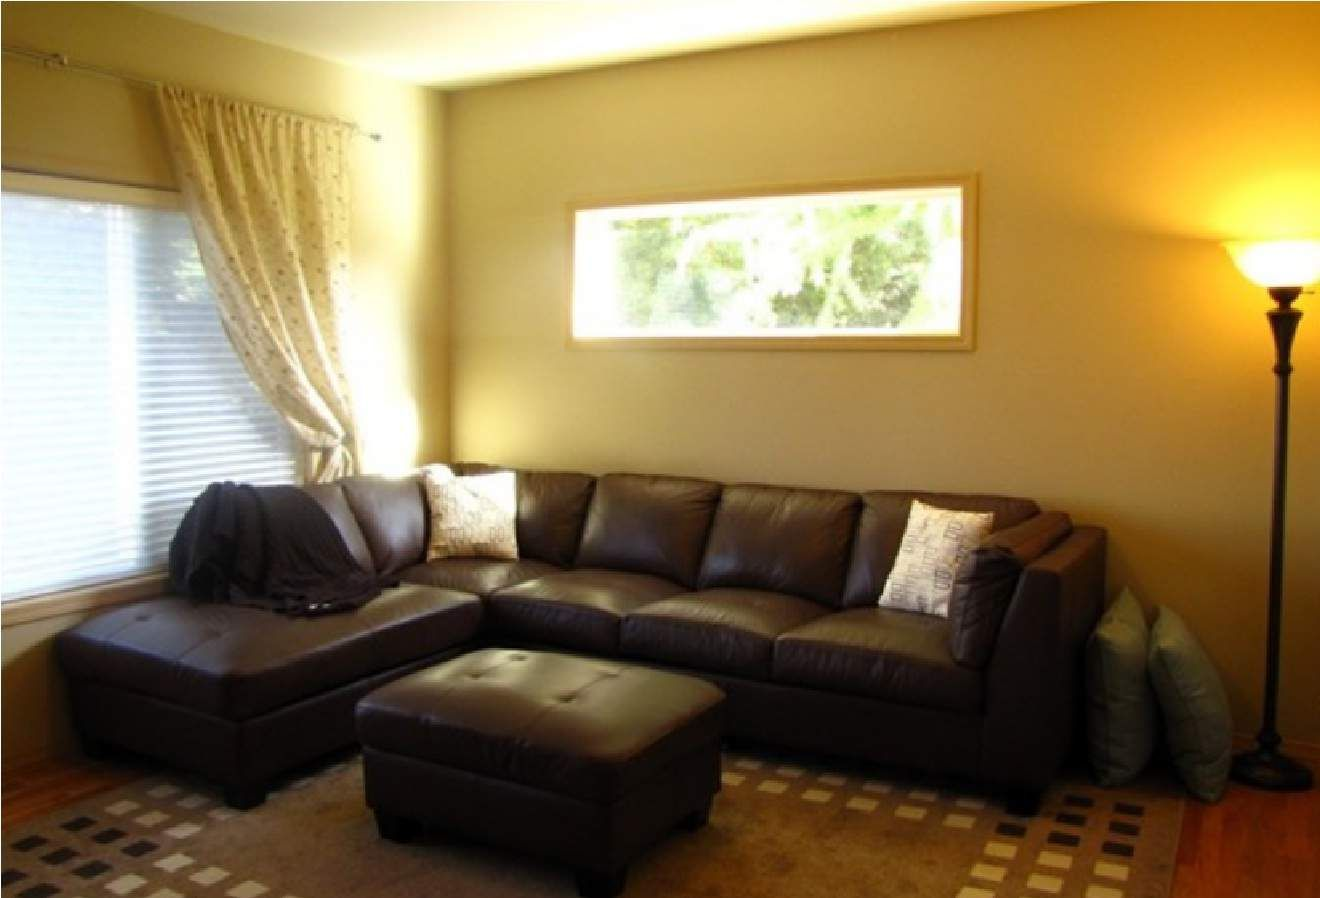 Yellow Living Room Walls Large Living Room With Black Leather Sofa Bed And Yellow Wall Paint